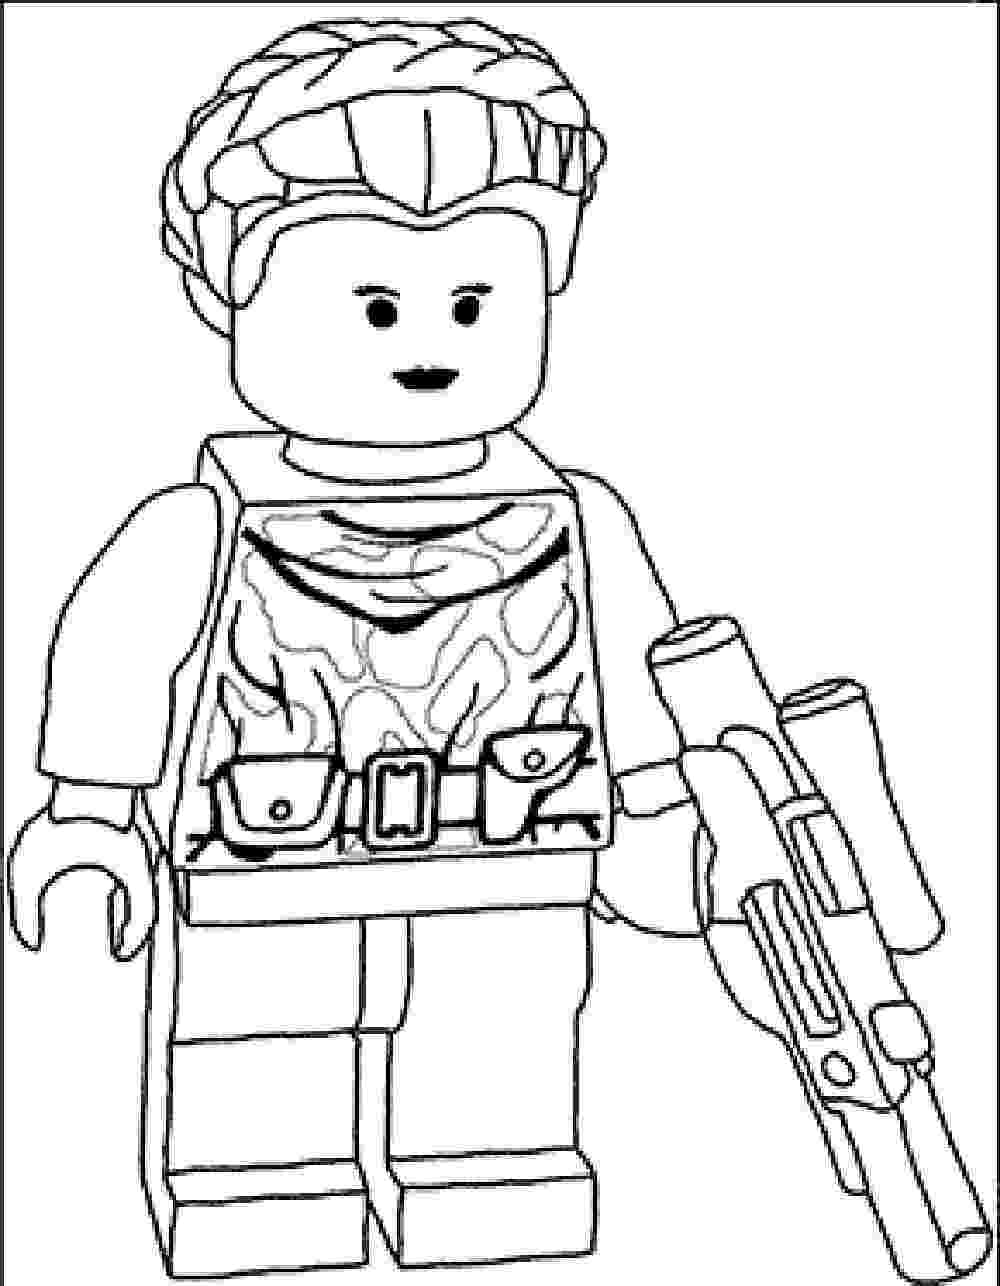 lego star wars color pages lego star wars coloring pages to download and print for free pages color lego star wars